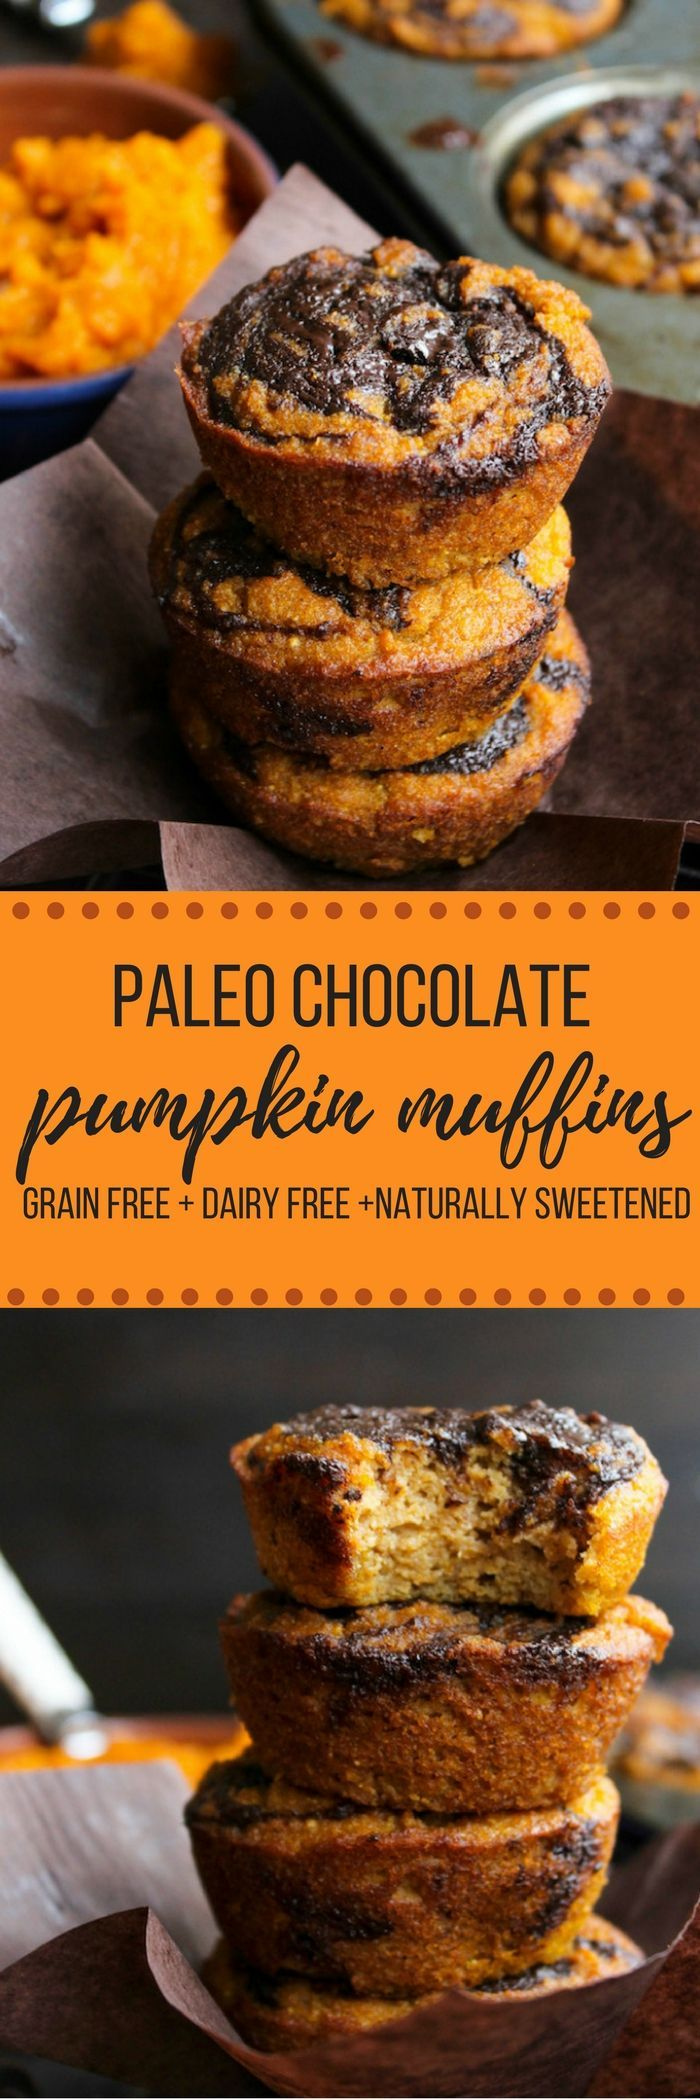 Best 20+ Chocolate pumpkin muffins ideas on Pinterest | Pumpkin ...